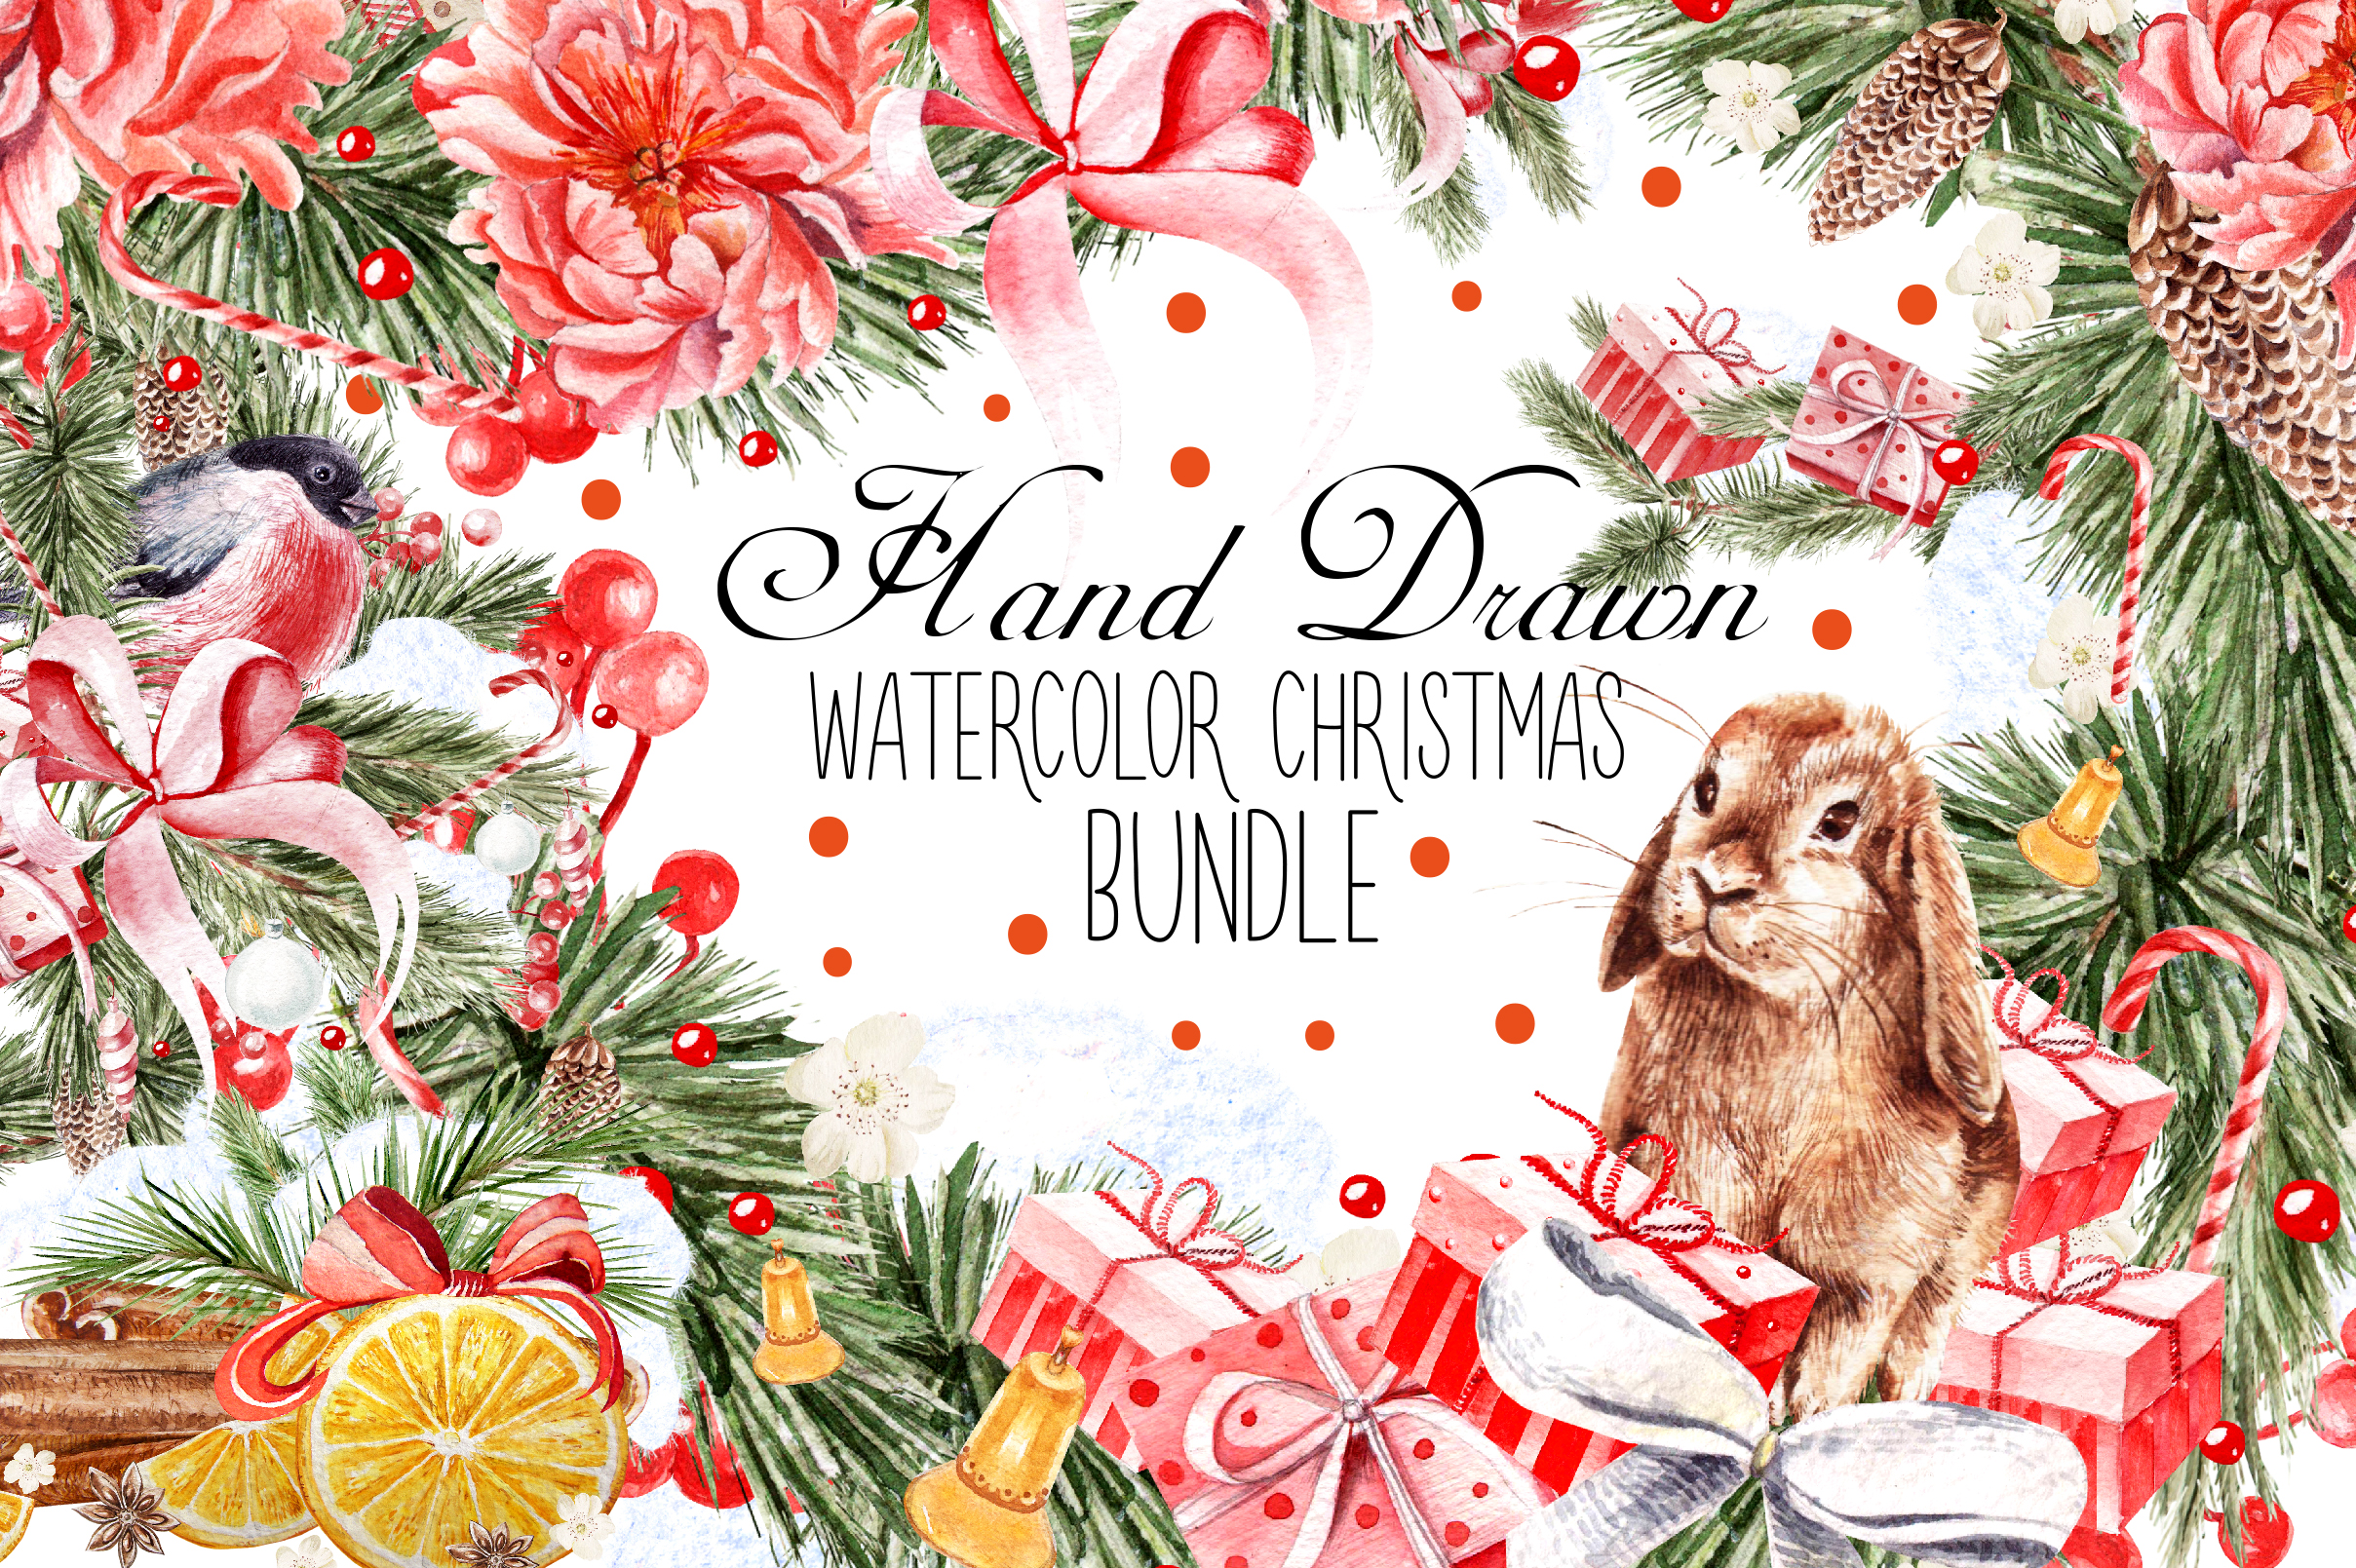 HandDawn Watercolor Christmas BUNDLE example image 1